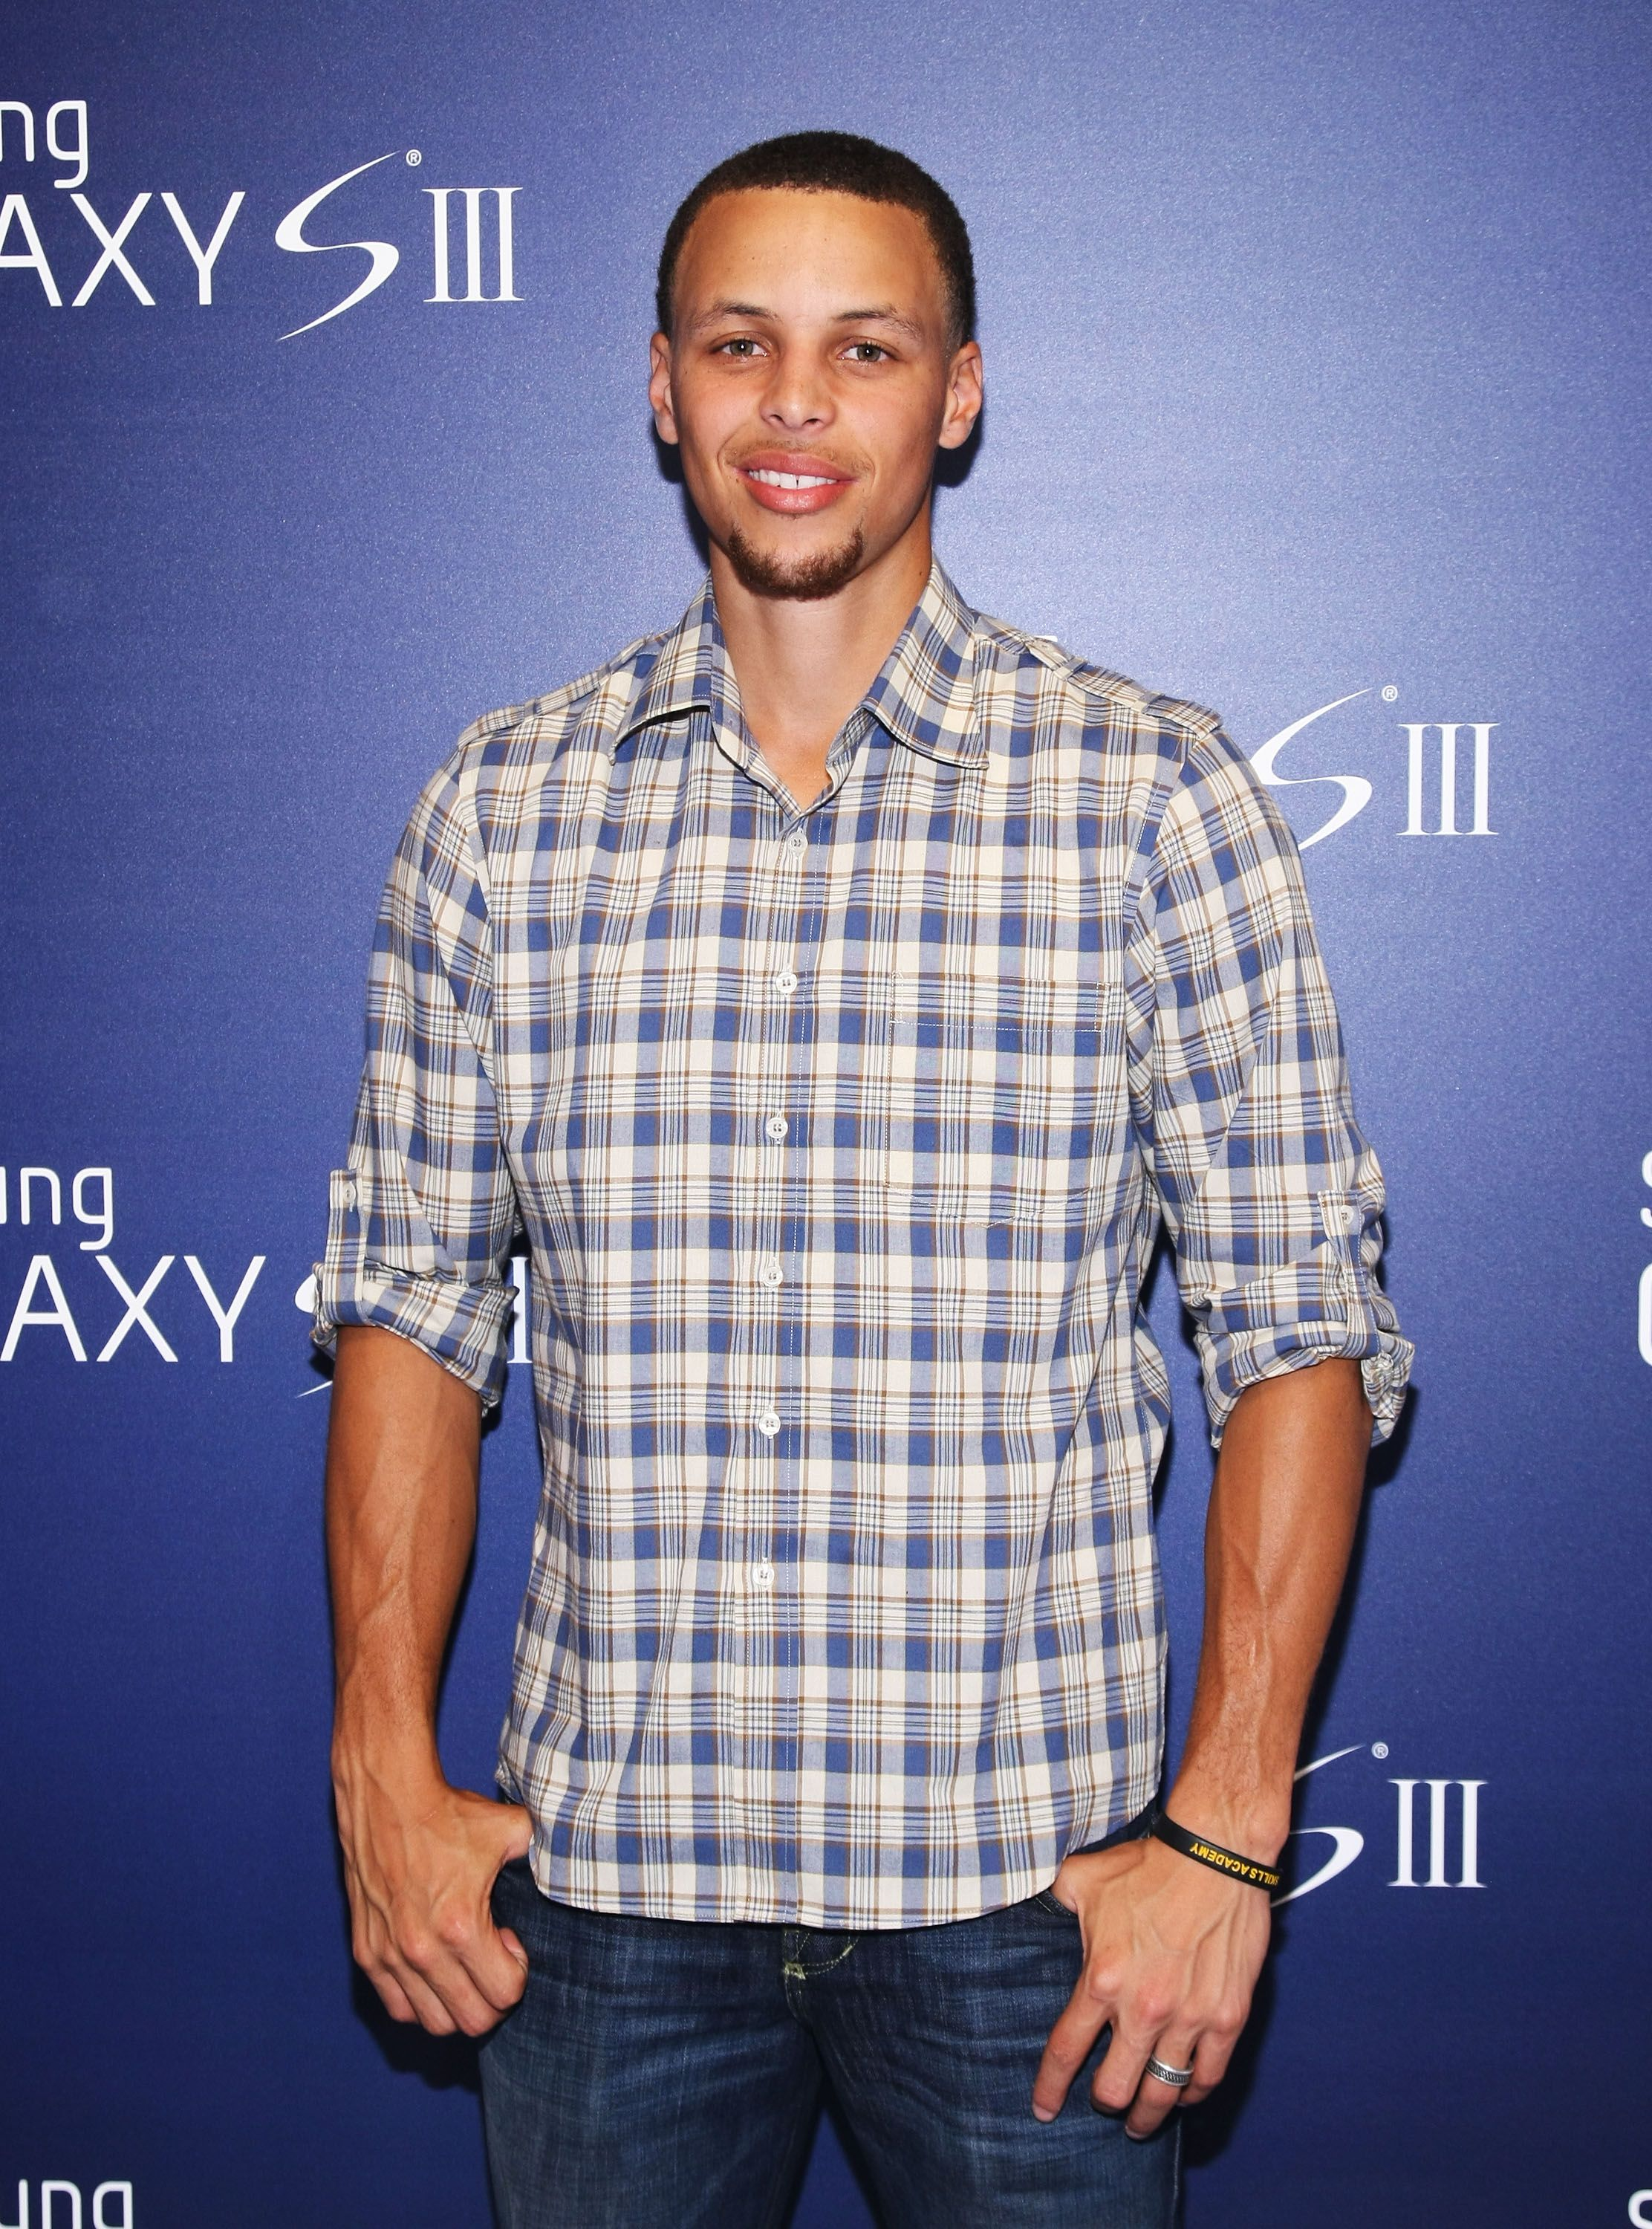 Stephen Curry at the Samsung Galaxy S III Launch hosted by Ashley Greene at Skylight Studios on June 20, 2012 in New York City. | Source: Getty Images